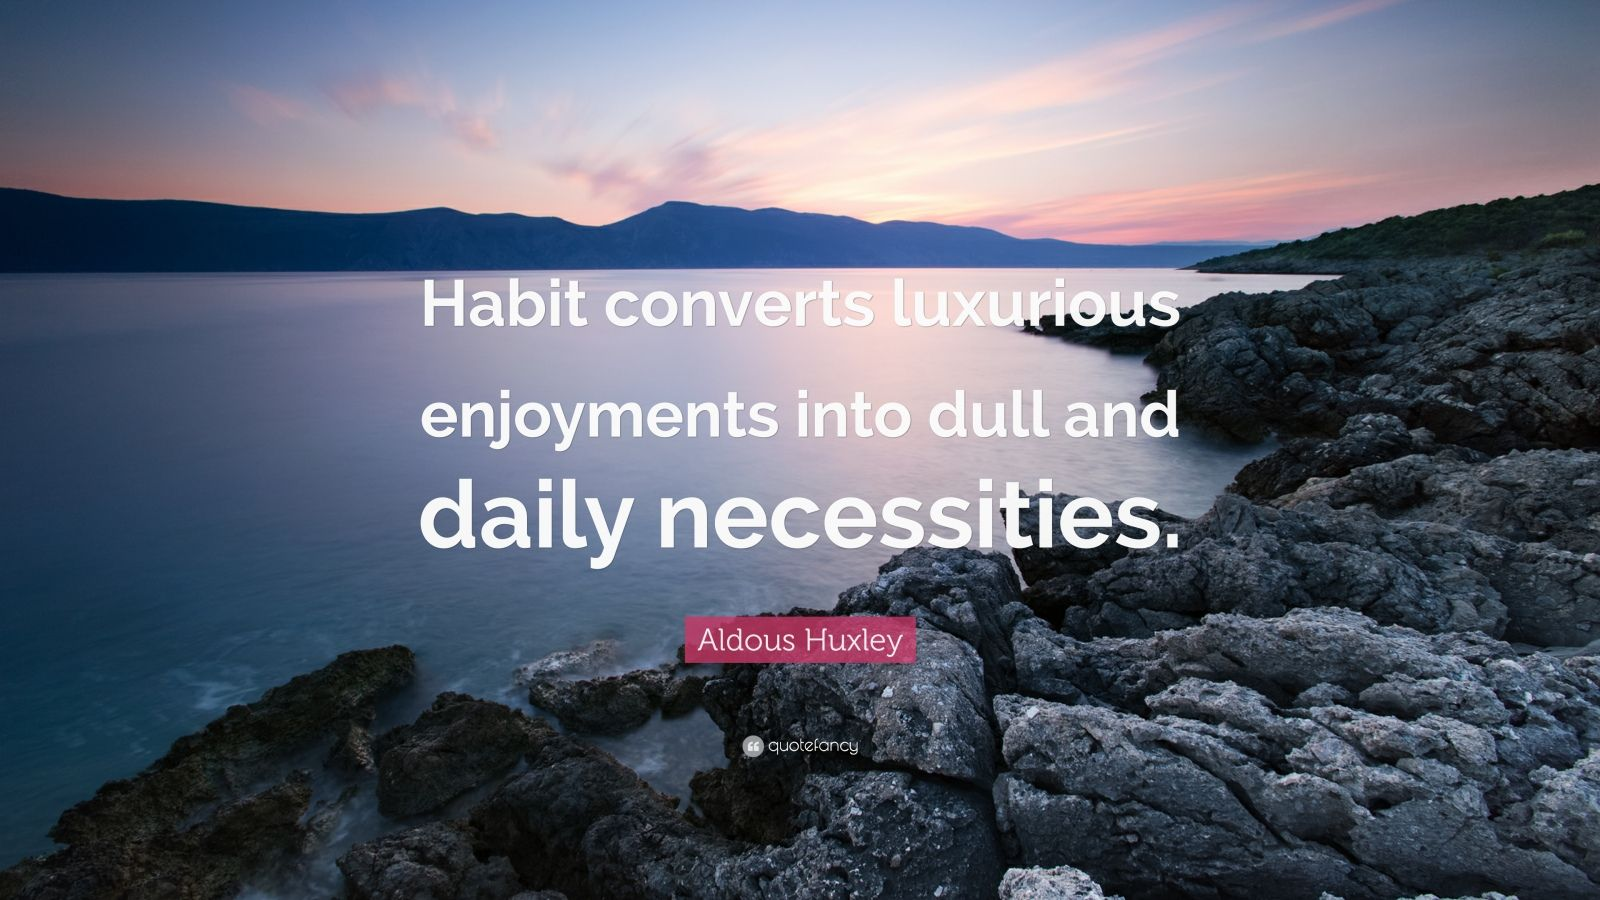 """Aldous Huxley Quote: """"Habit converts luxurious enjoyments into dull and daily necessities."""""""